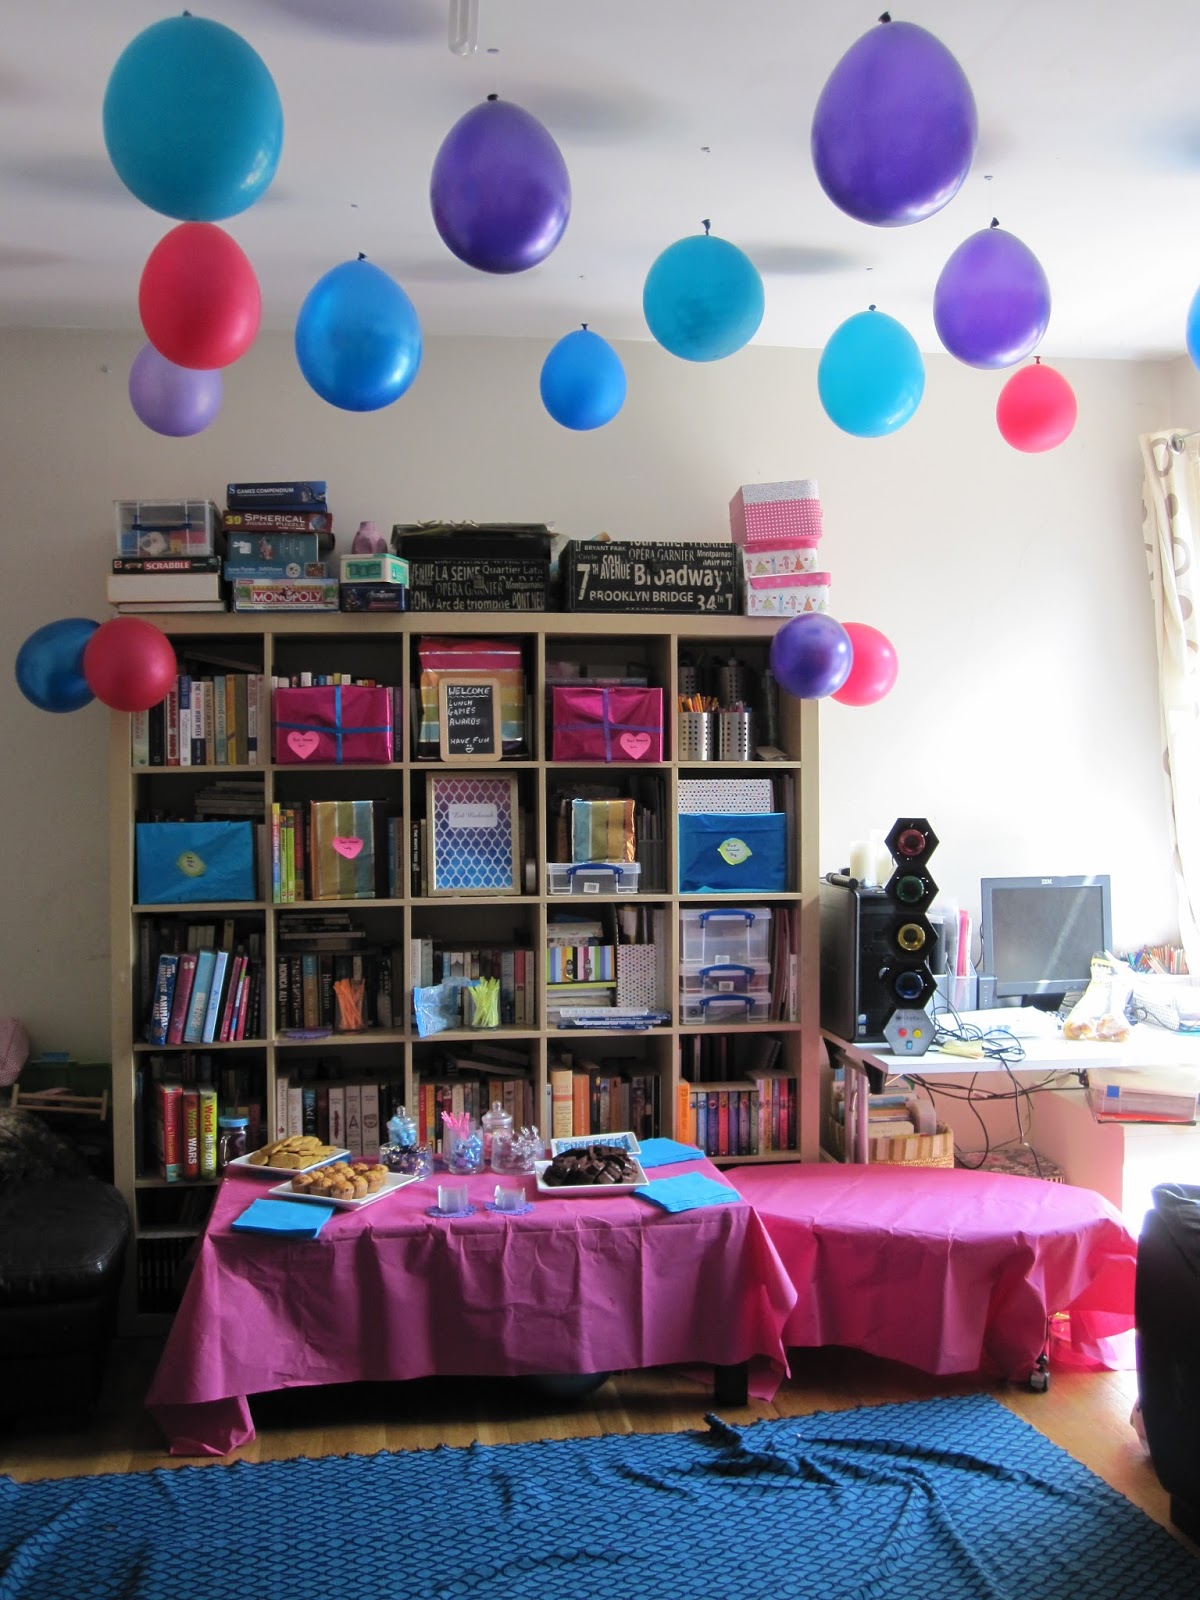 Wonderful Eid Party Eid Al-Fitr Decorations - Eid%2BFitr%2B2015%2BParty%2B1  Snapshot_548349 .JPG